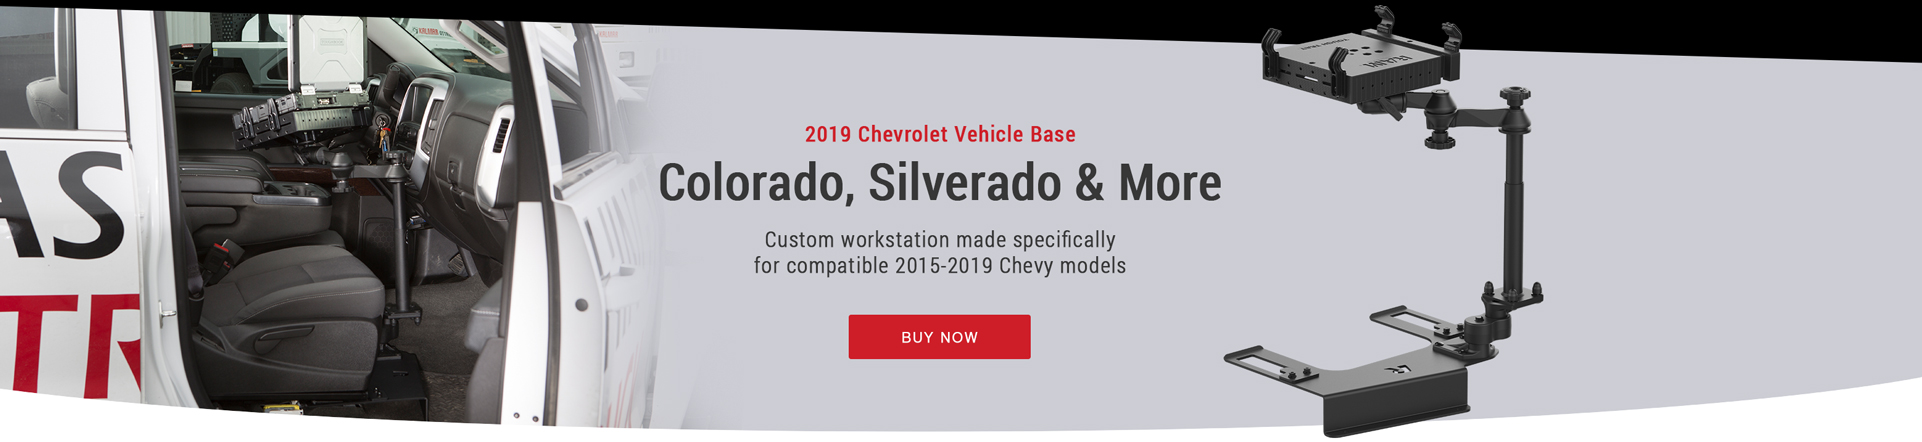 Custom workstation for compatible 2015-2019 Chevy models